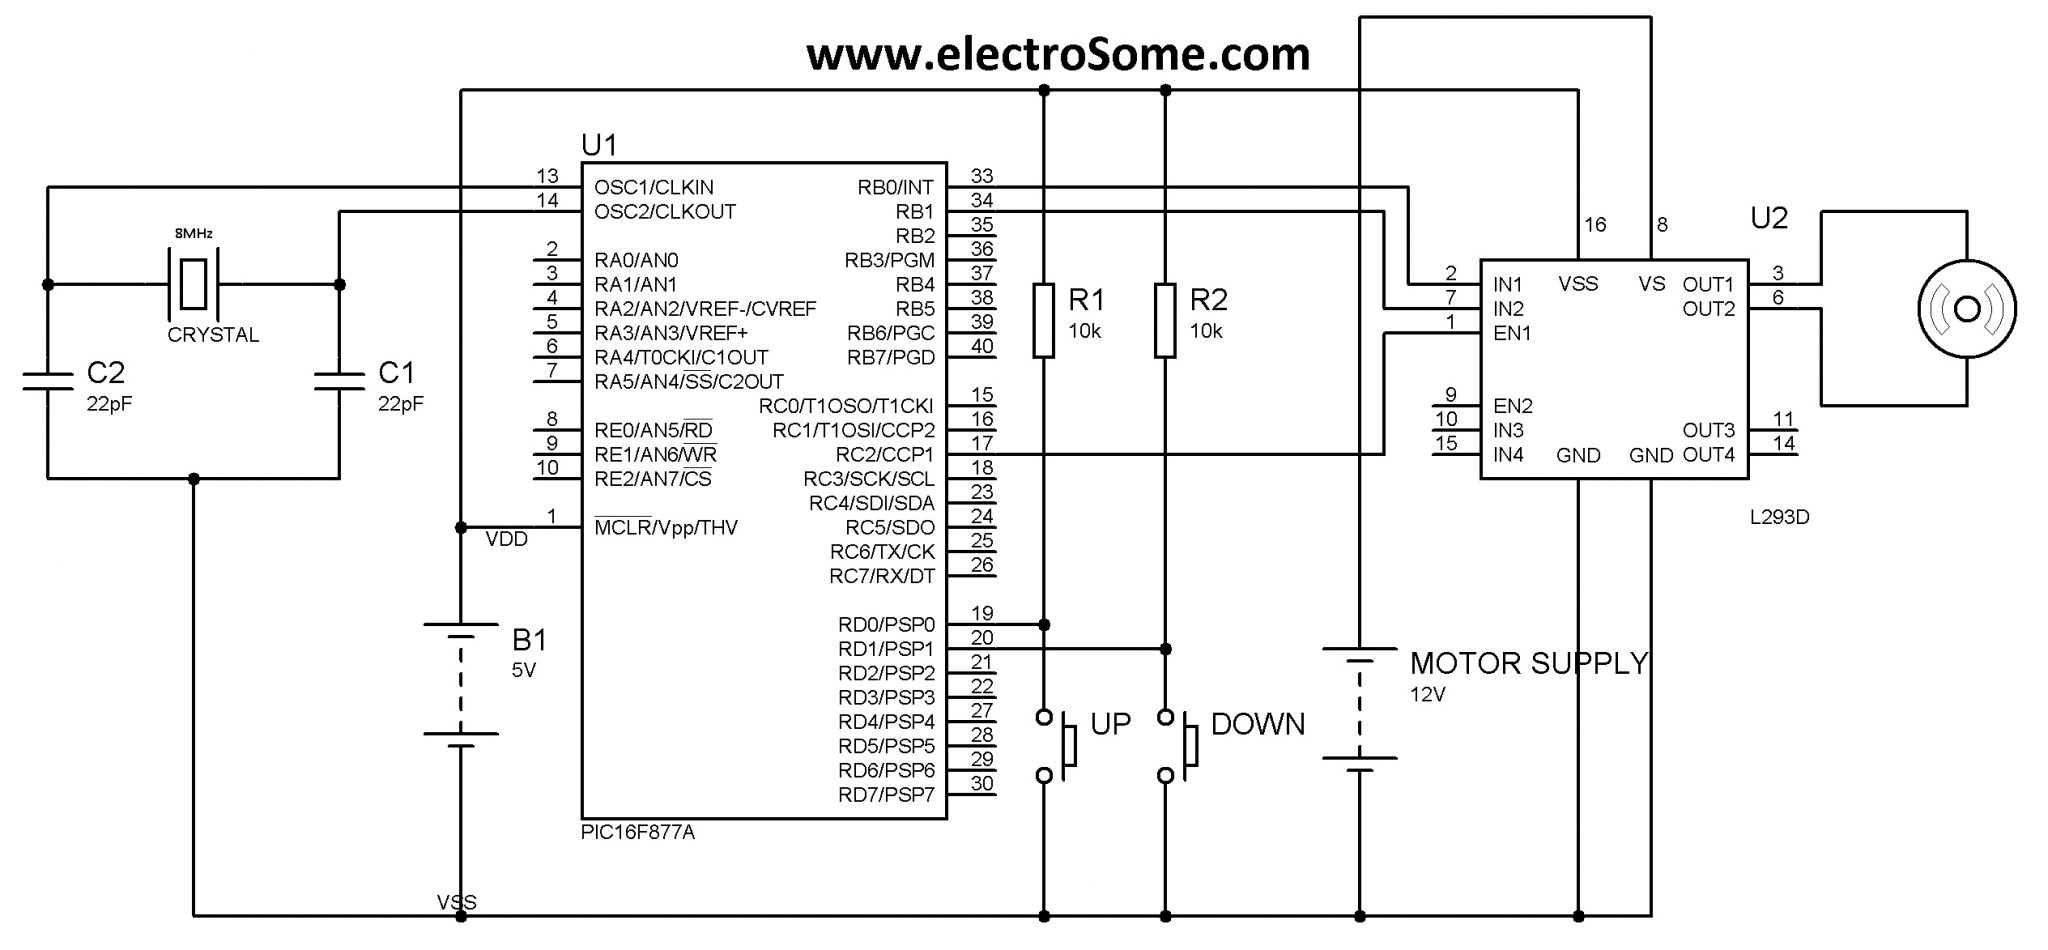 krups wiring diagram auto coil wiring diagram dc motor speed control using pwm with pic microcontroller #7